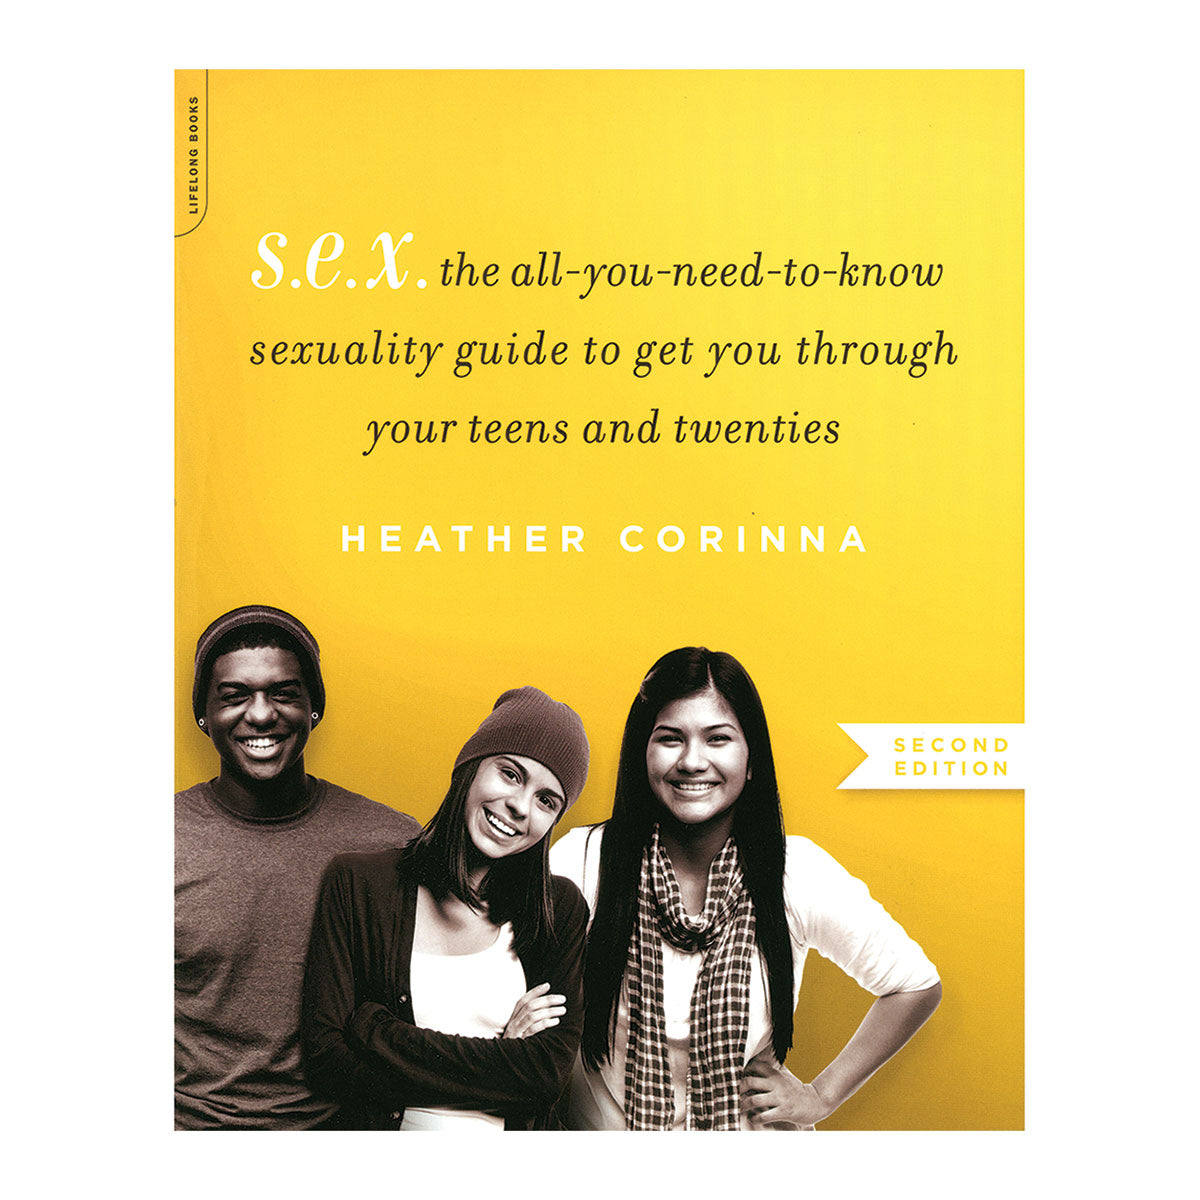 Da Capo Press S.E.X.: The All-You-Need-to-Know Sexuality Guide to Get You Through Your Teens and Twenties